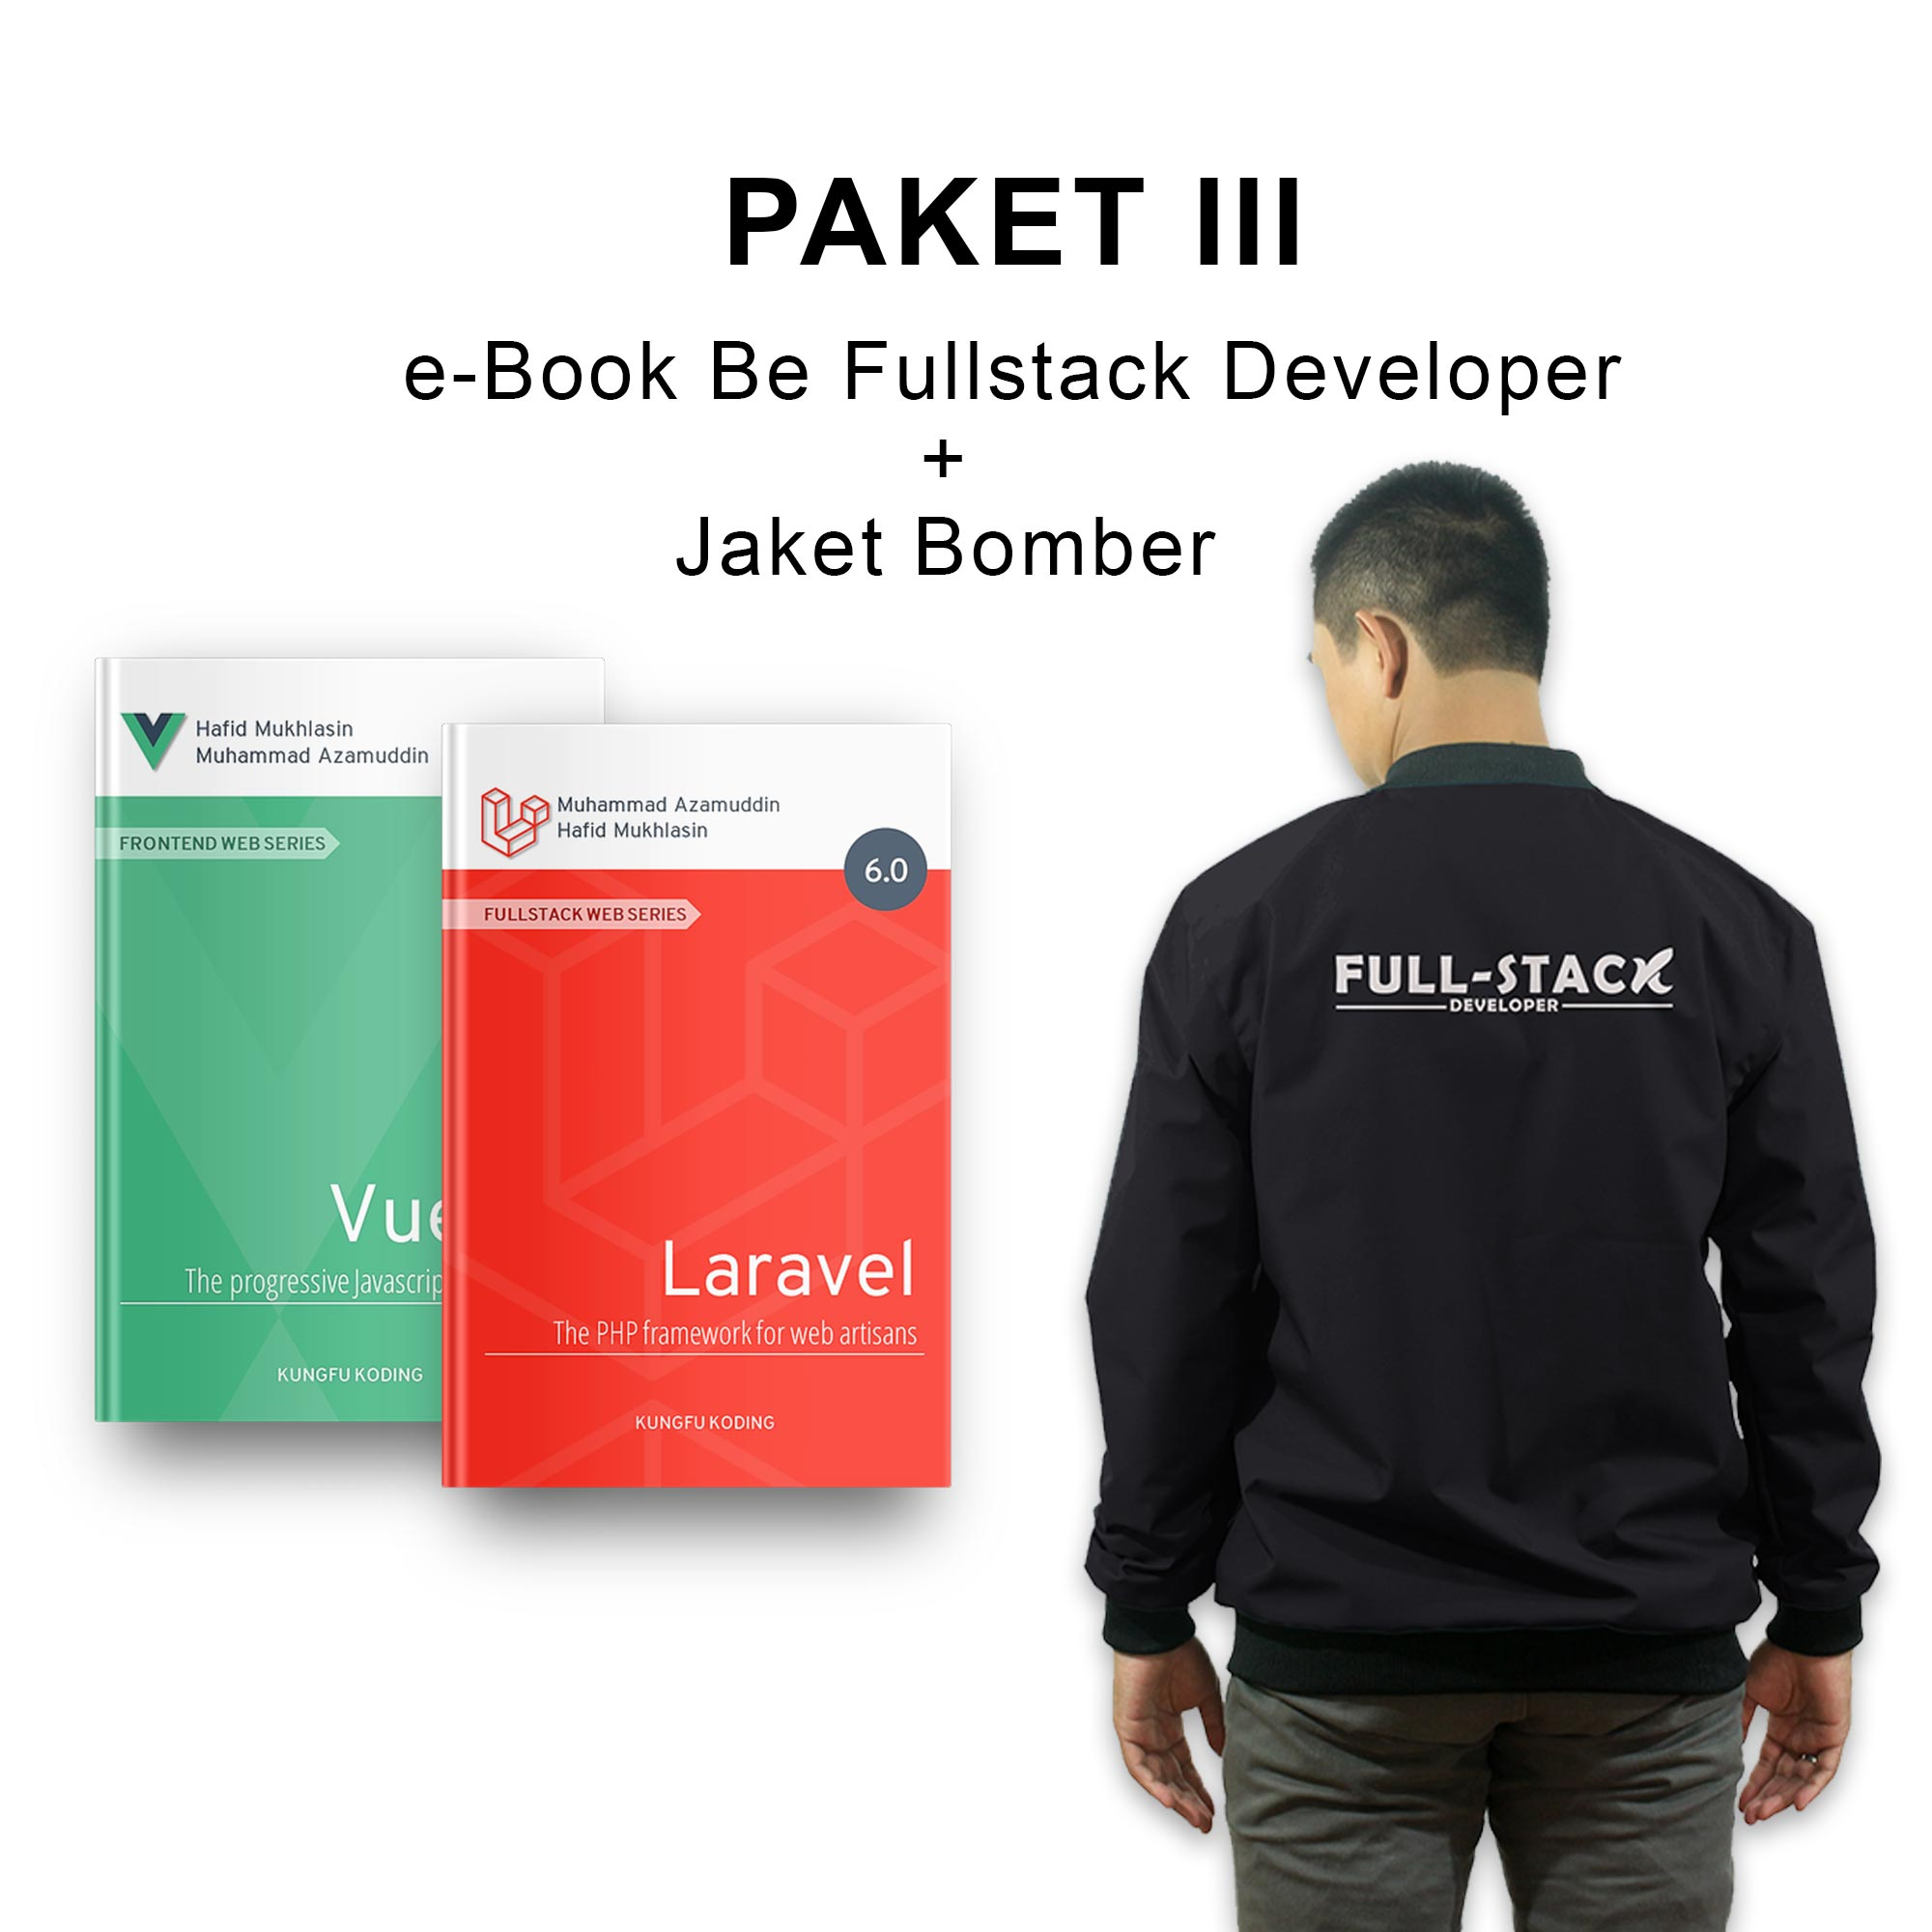 PAKET III : e-Book Be Fullstack Developer + Jaket Bomber